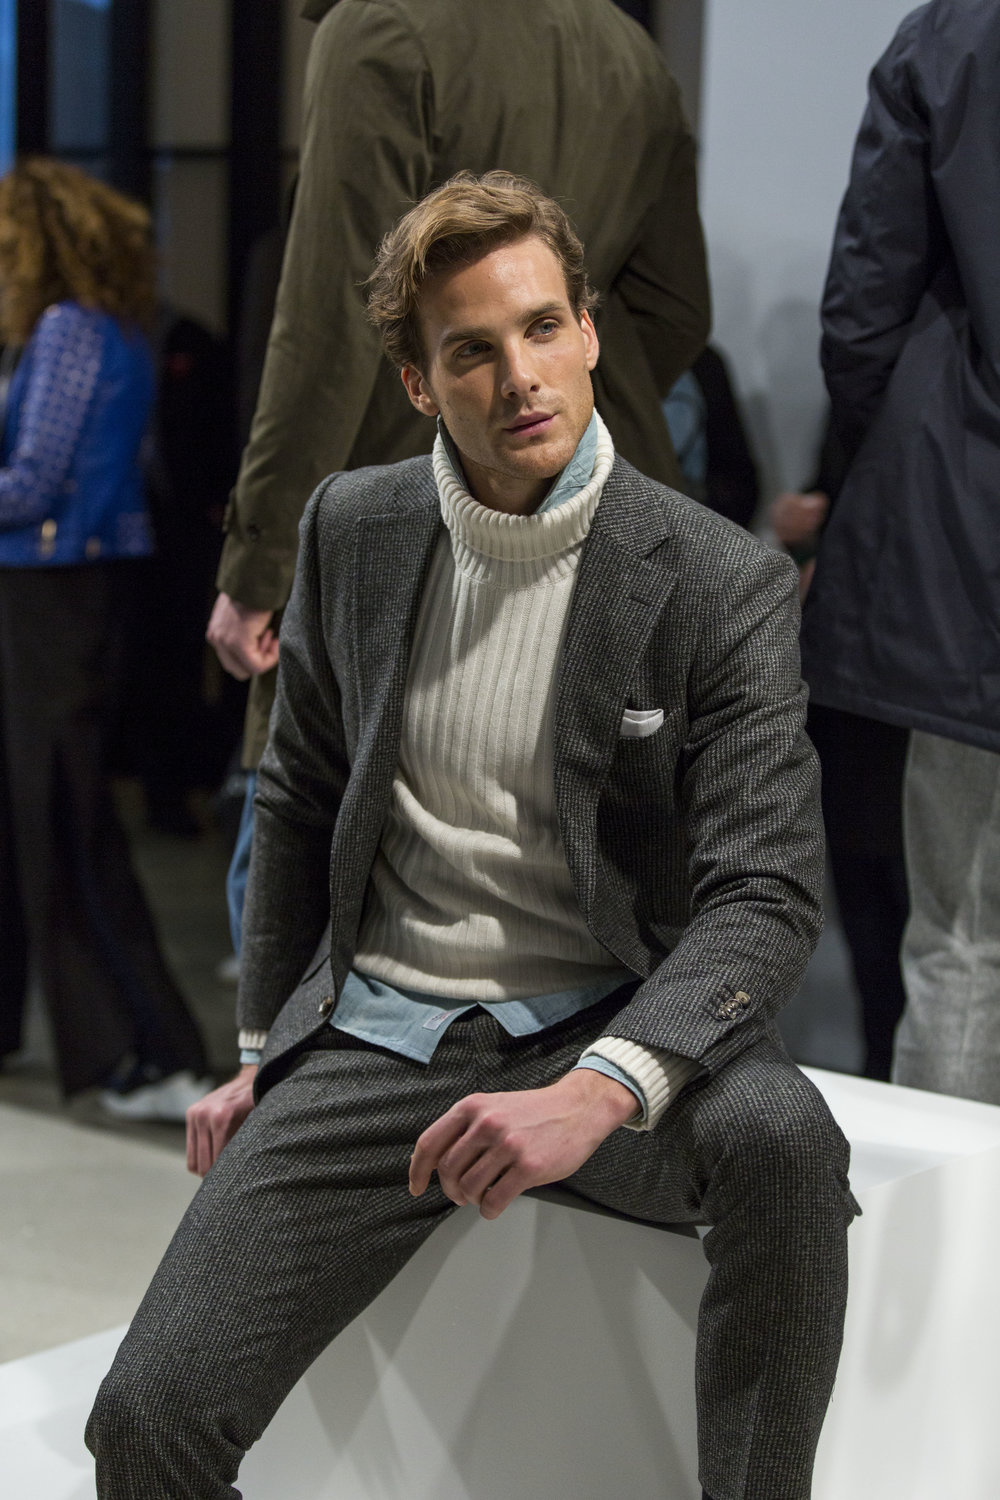 SUITSUPPLY-FALL -WINTER-NYFWM2018-MENS-COLLECTION- AW18-NYFWM-4.jpg